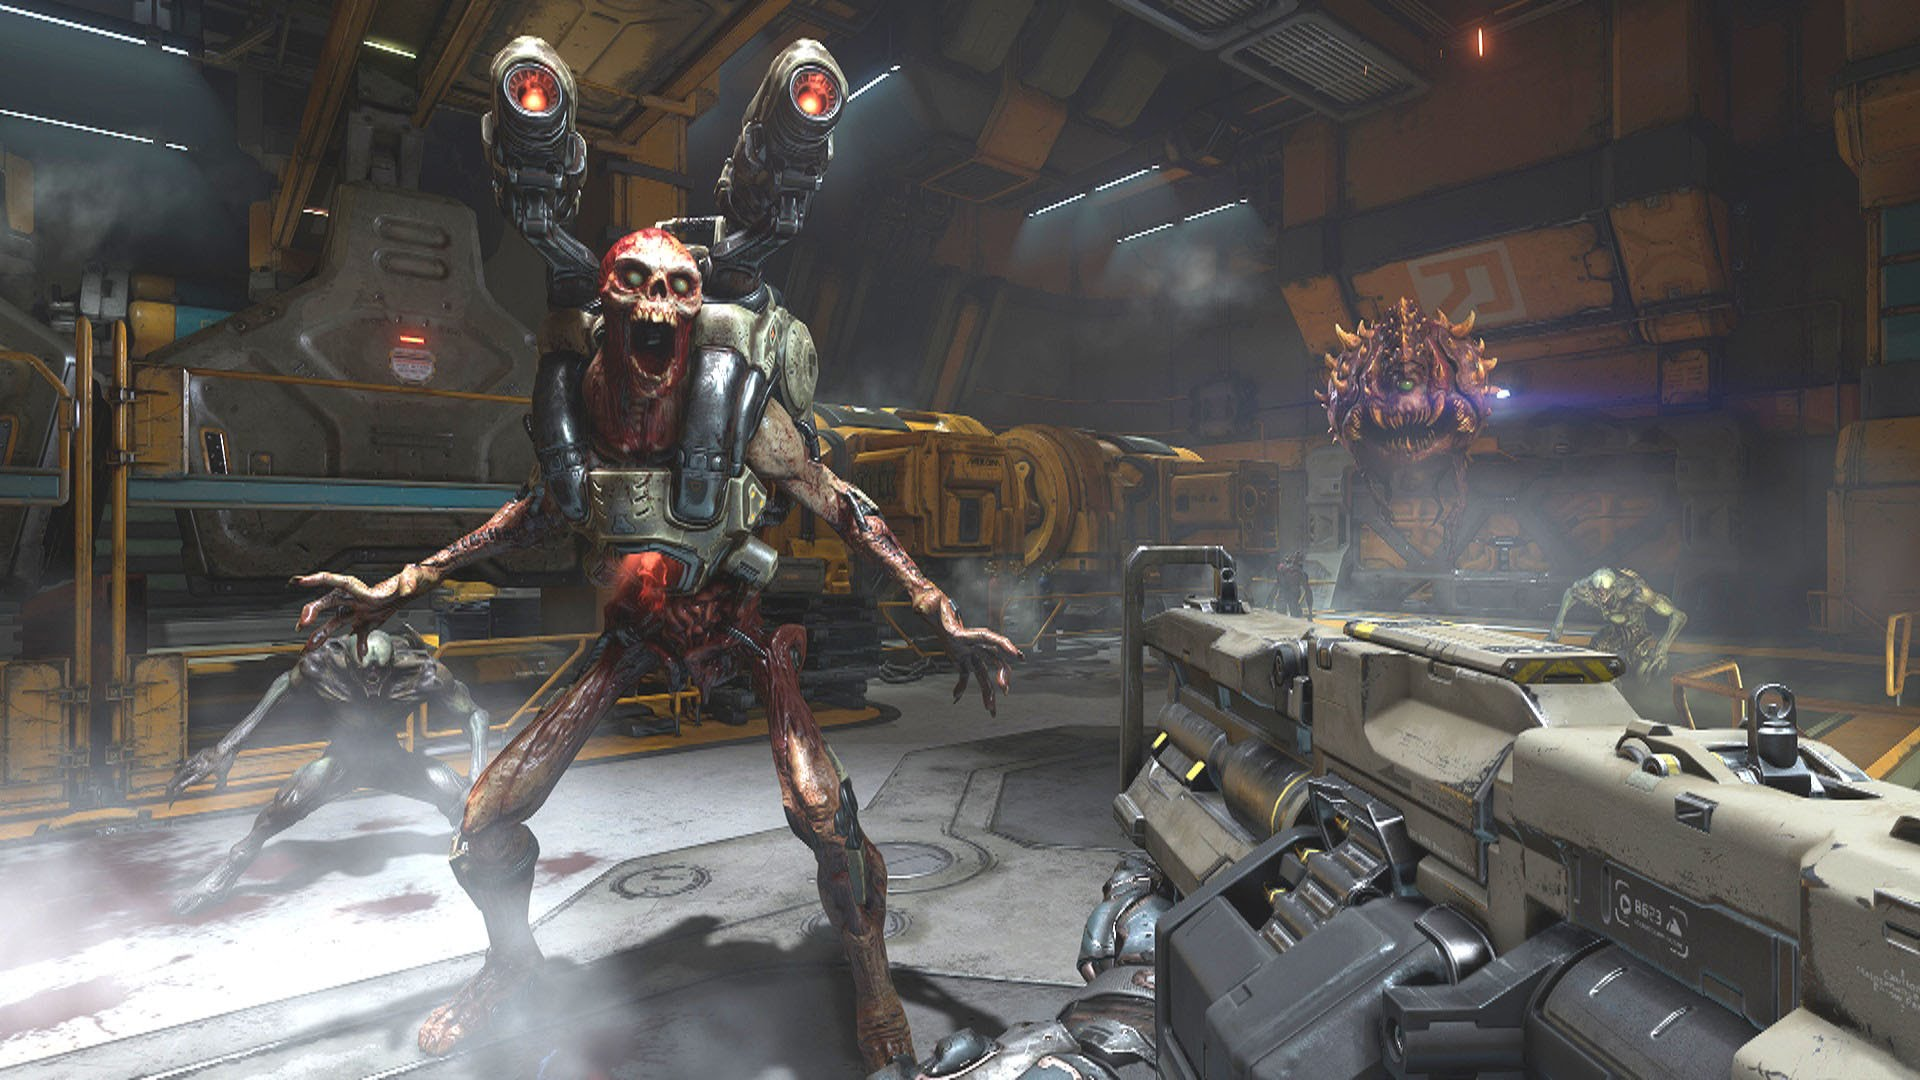 Doom's next update has a neat feature that's a callback to the original game